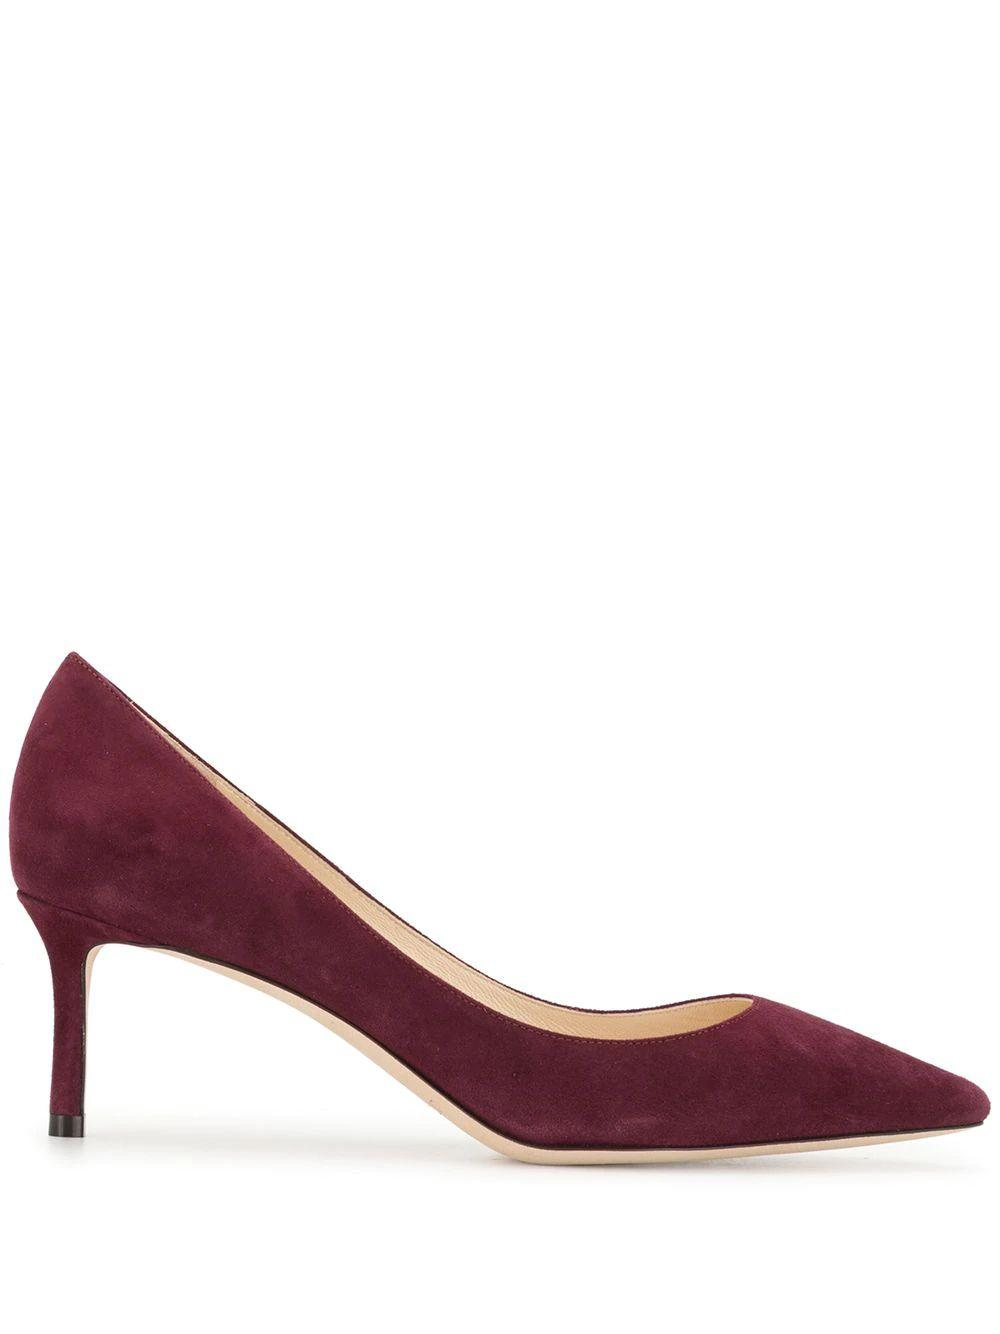 Romy 60mm Suede Pumps Item # ROMY60-SUE-PF20